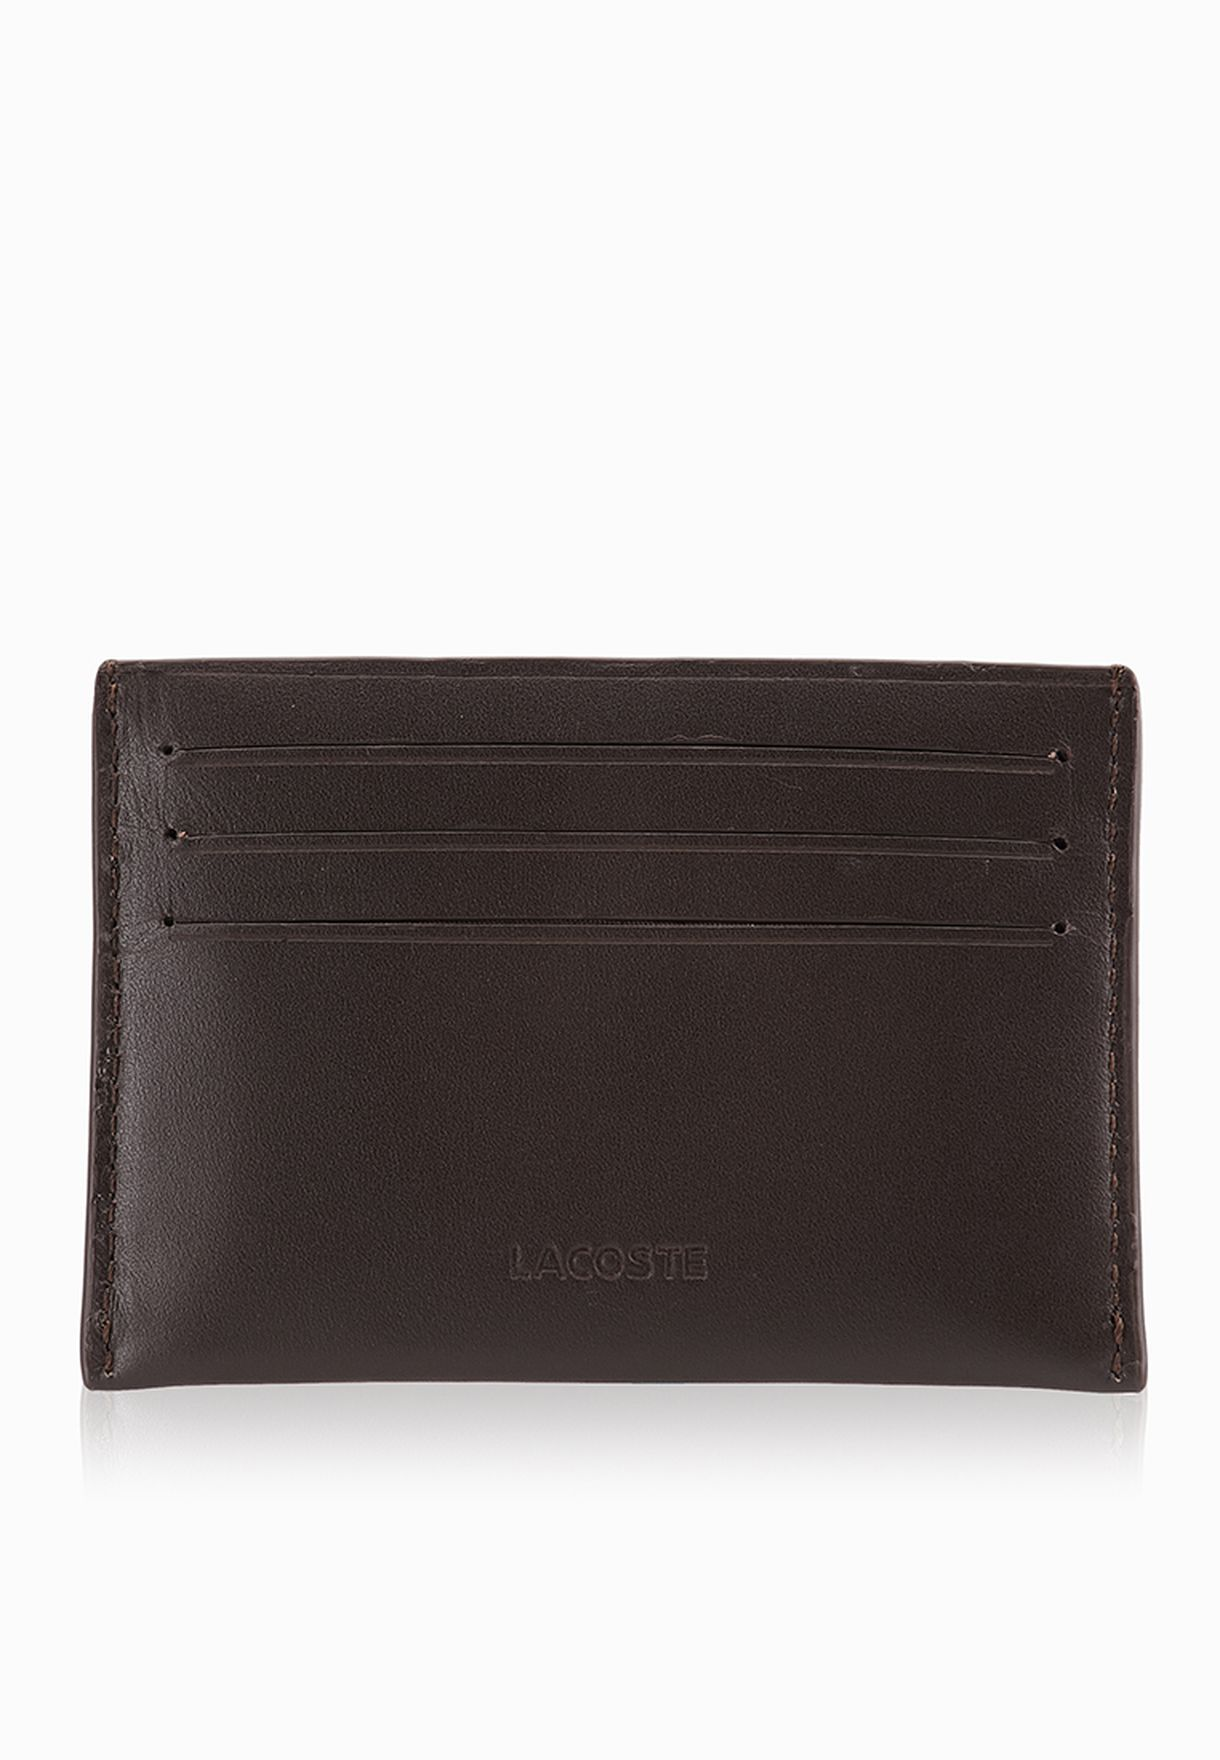 Small Leather Cardholder